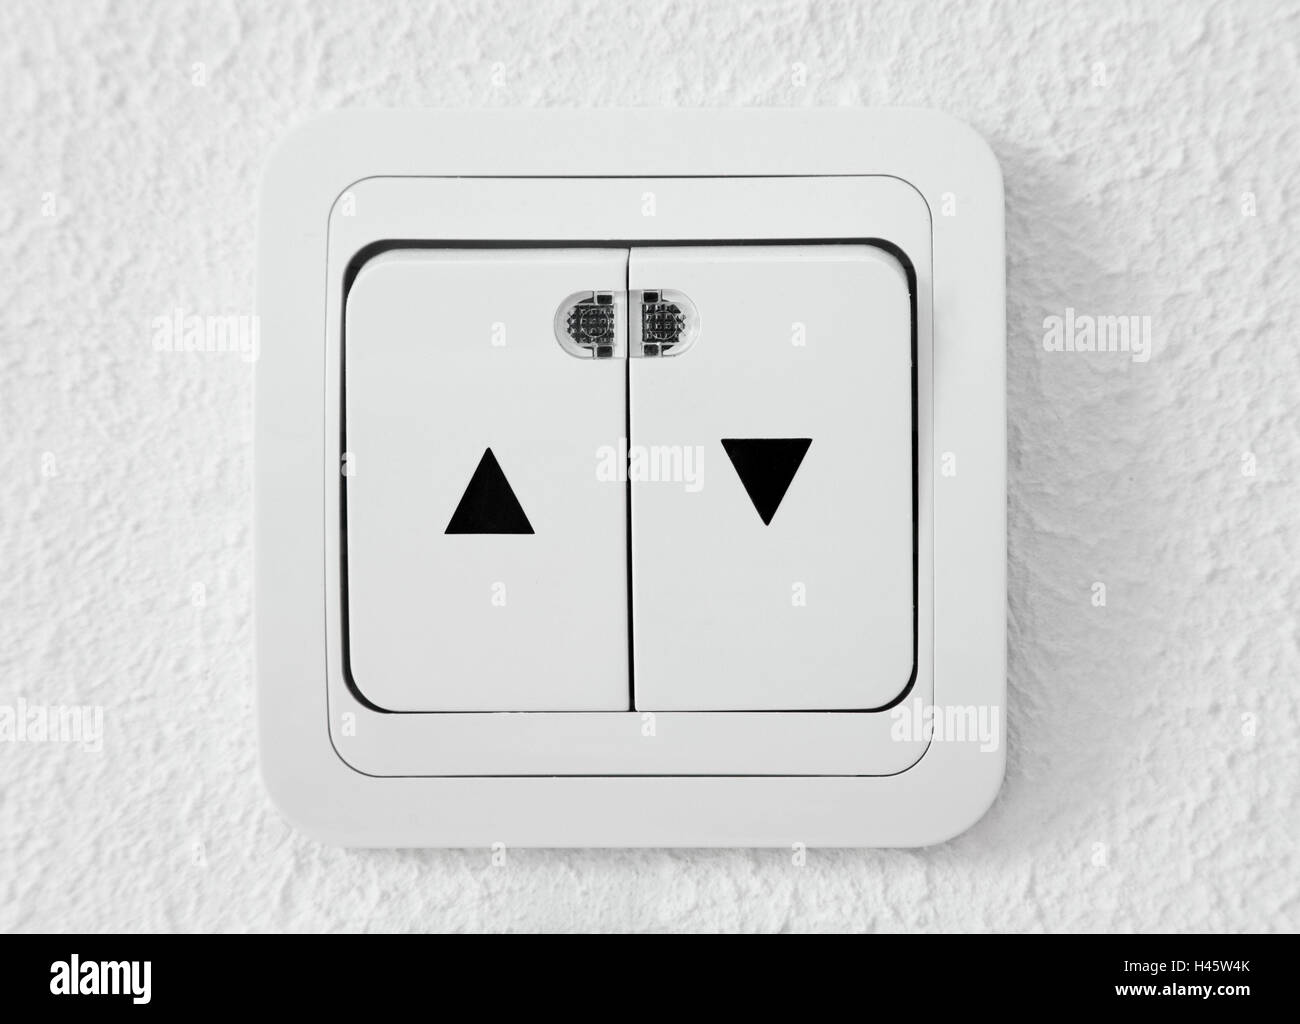 Switch Buttons Stockfotos & Switch Buttons Bilder - Alamy